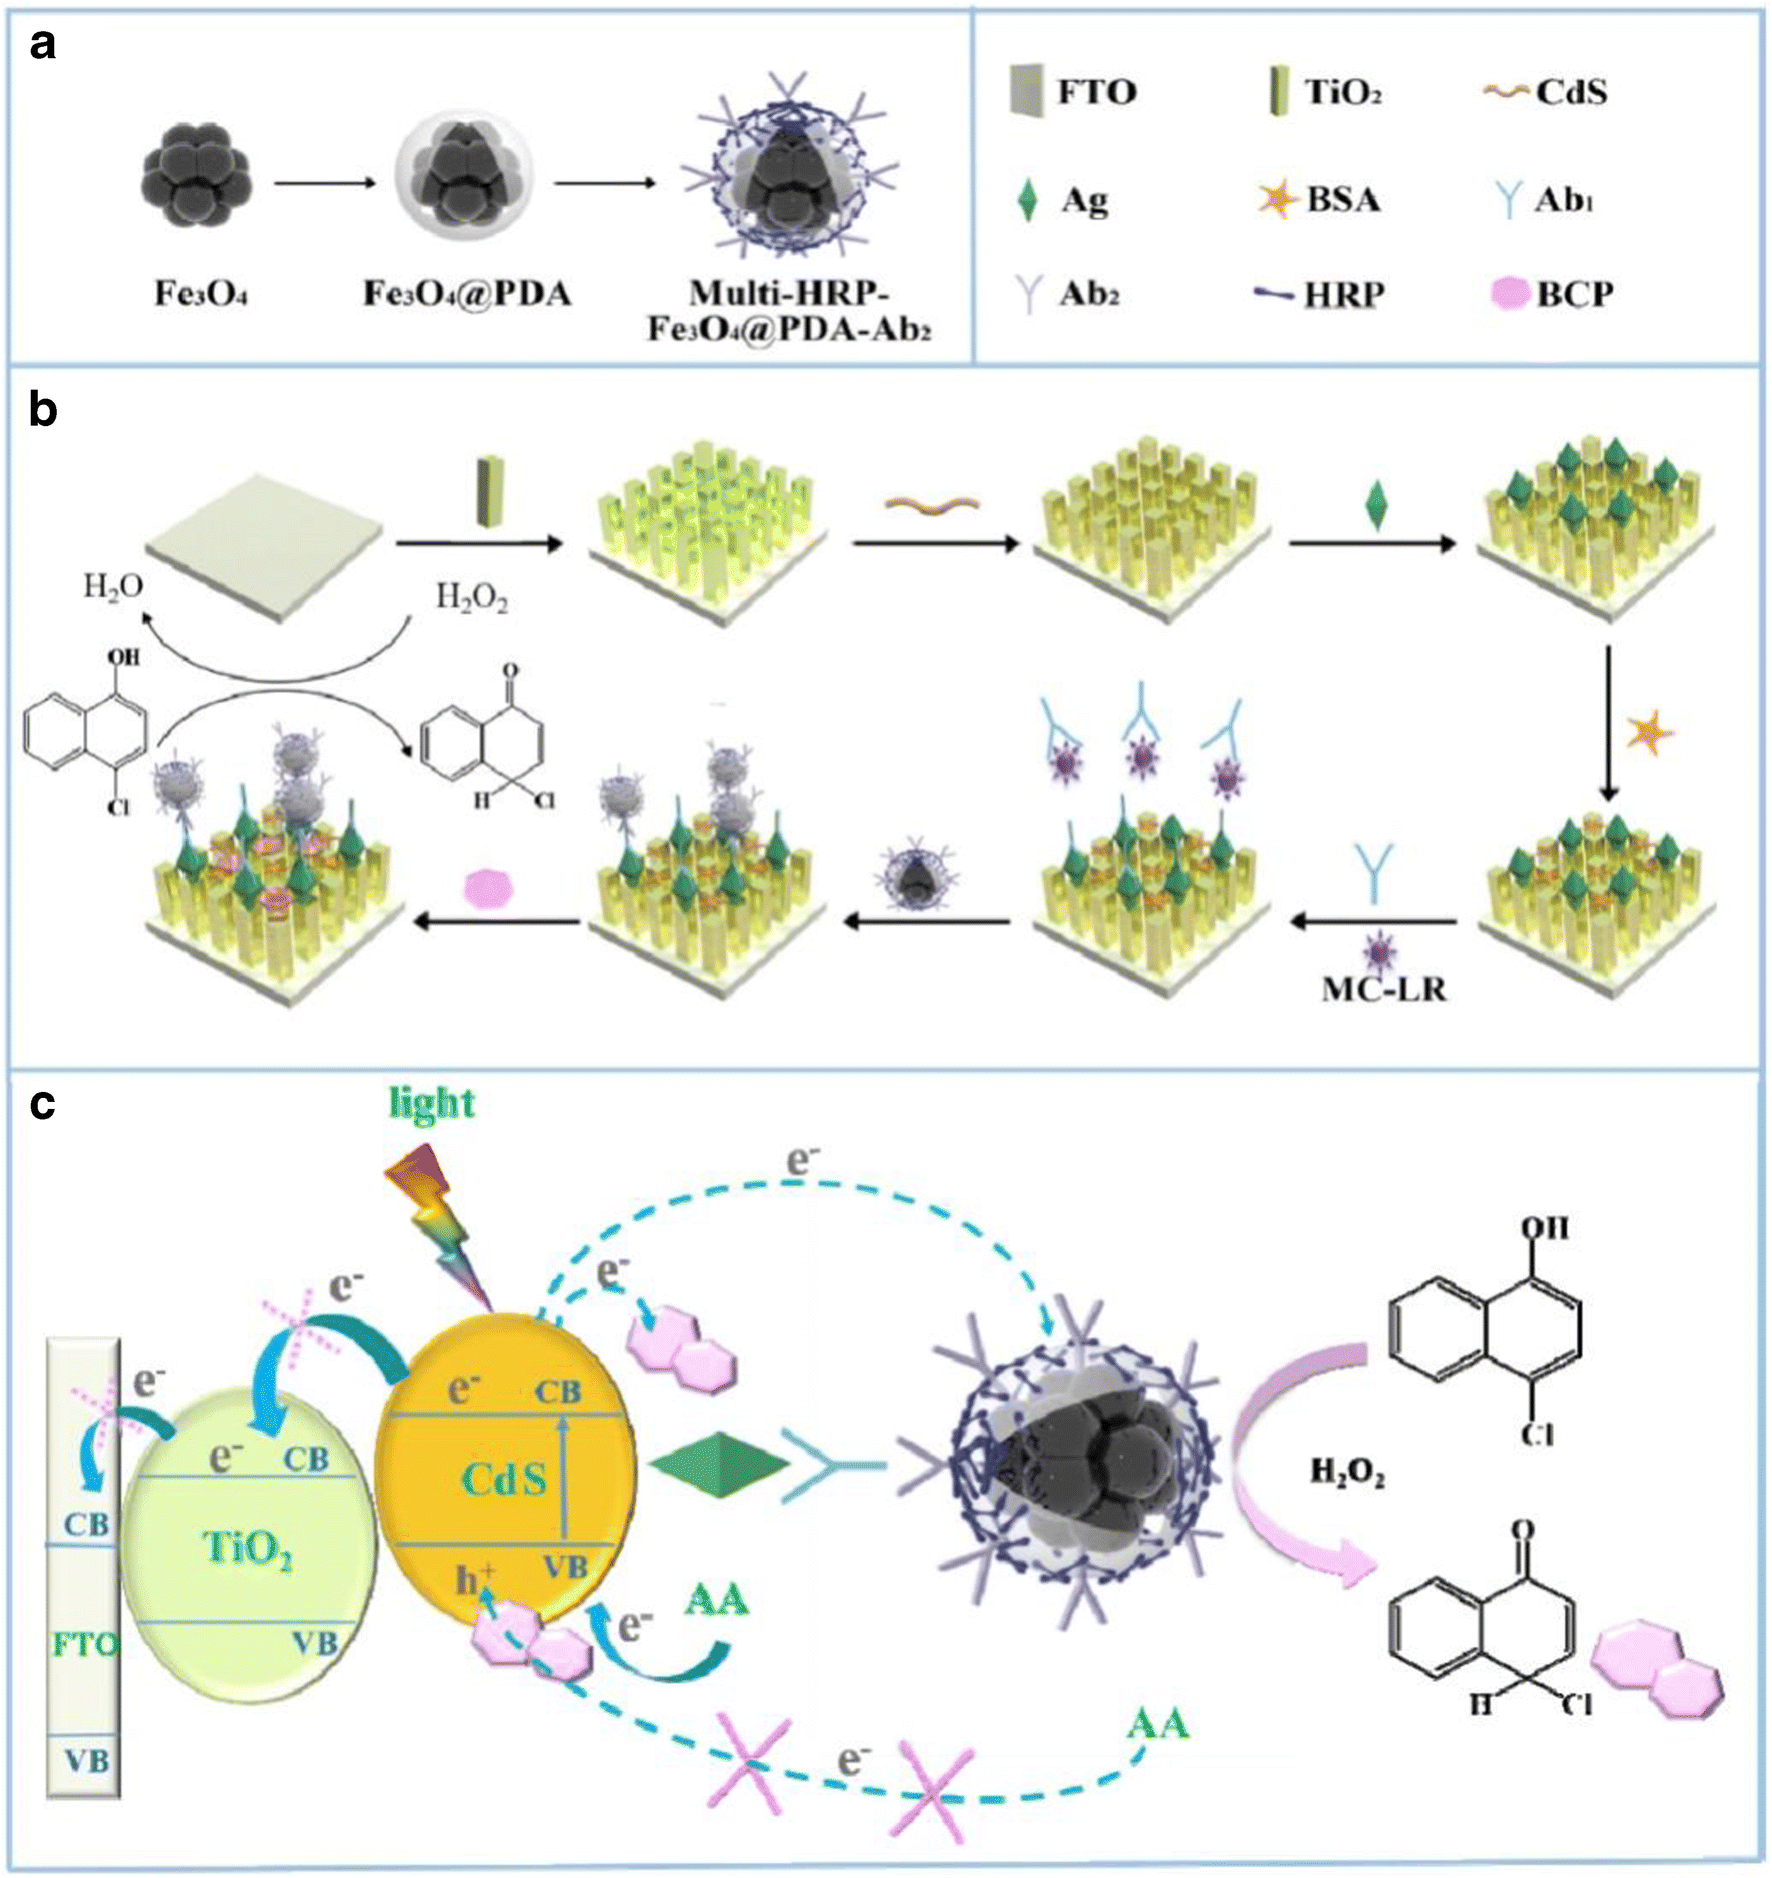 Magnetic nanoparticles for smart electrochemical immunoassays: a